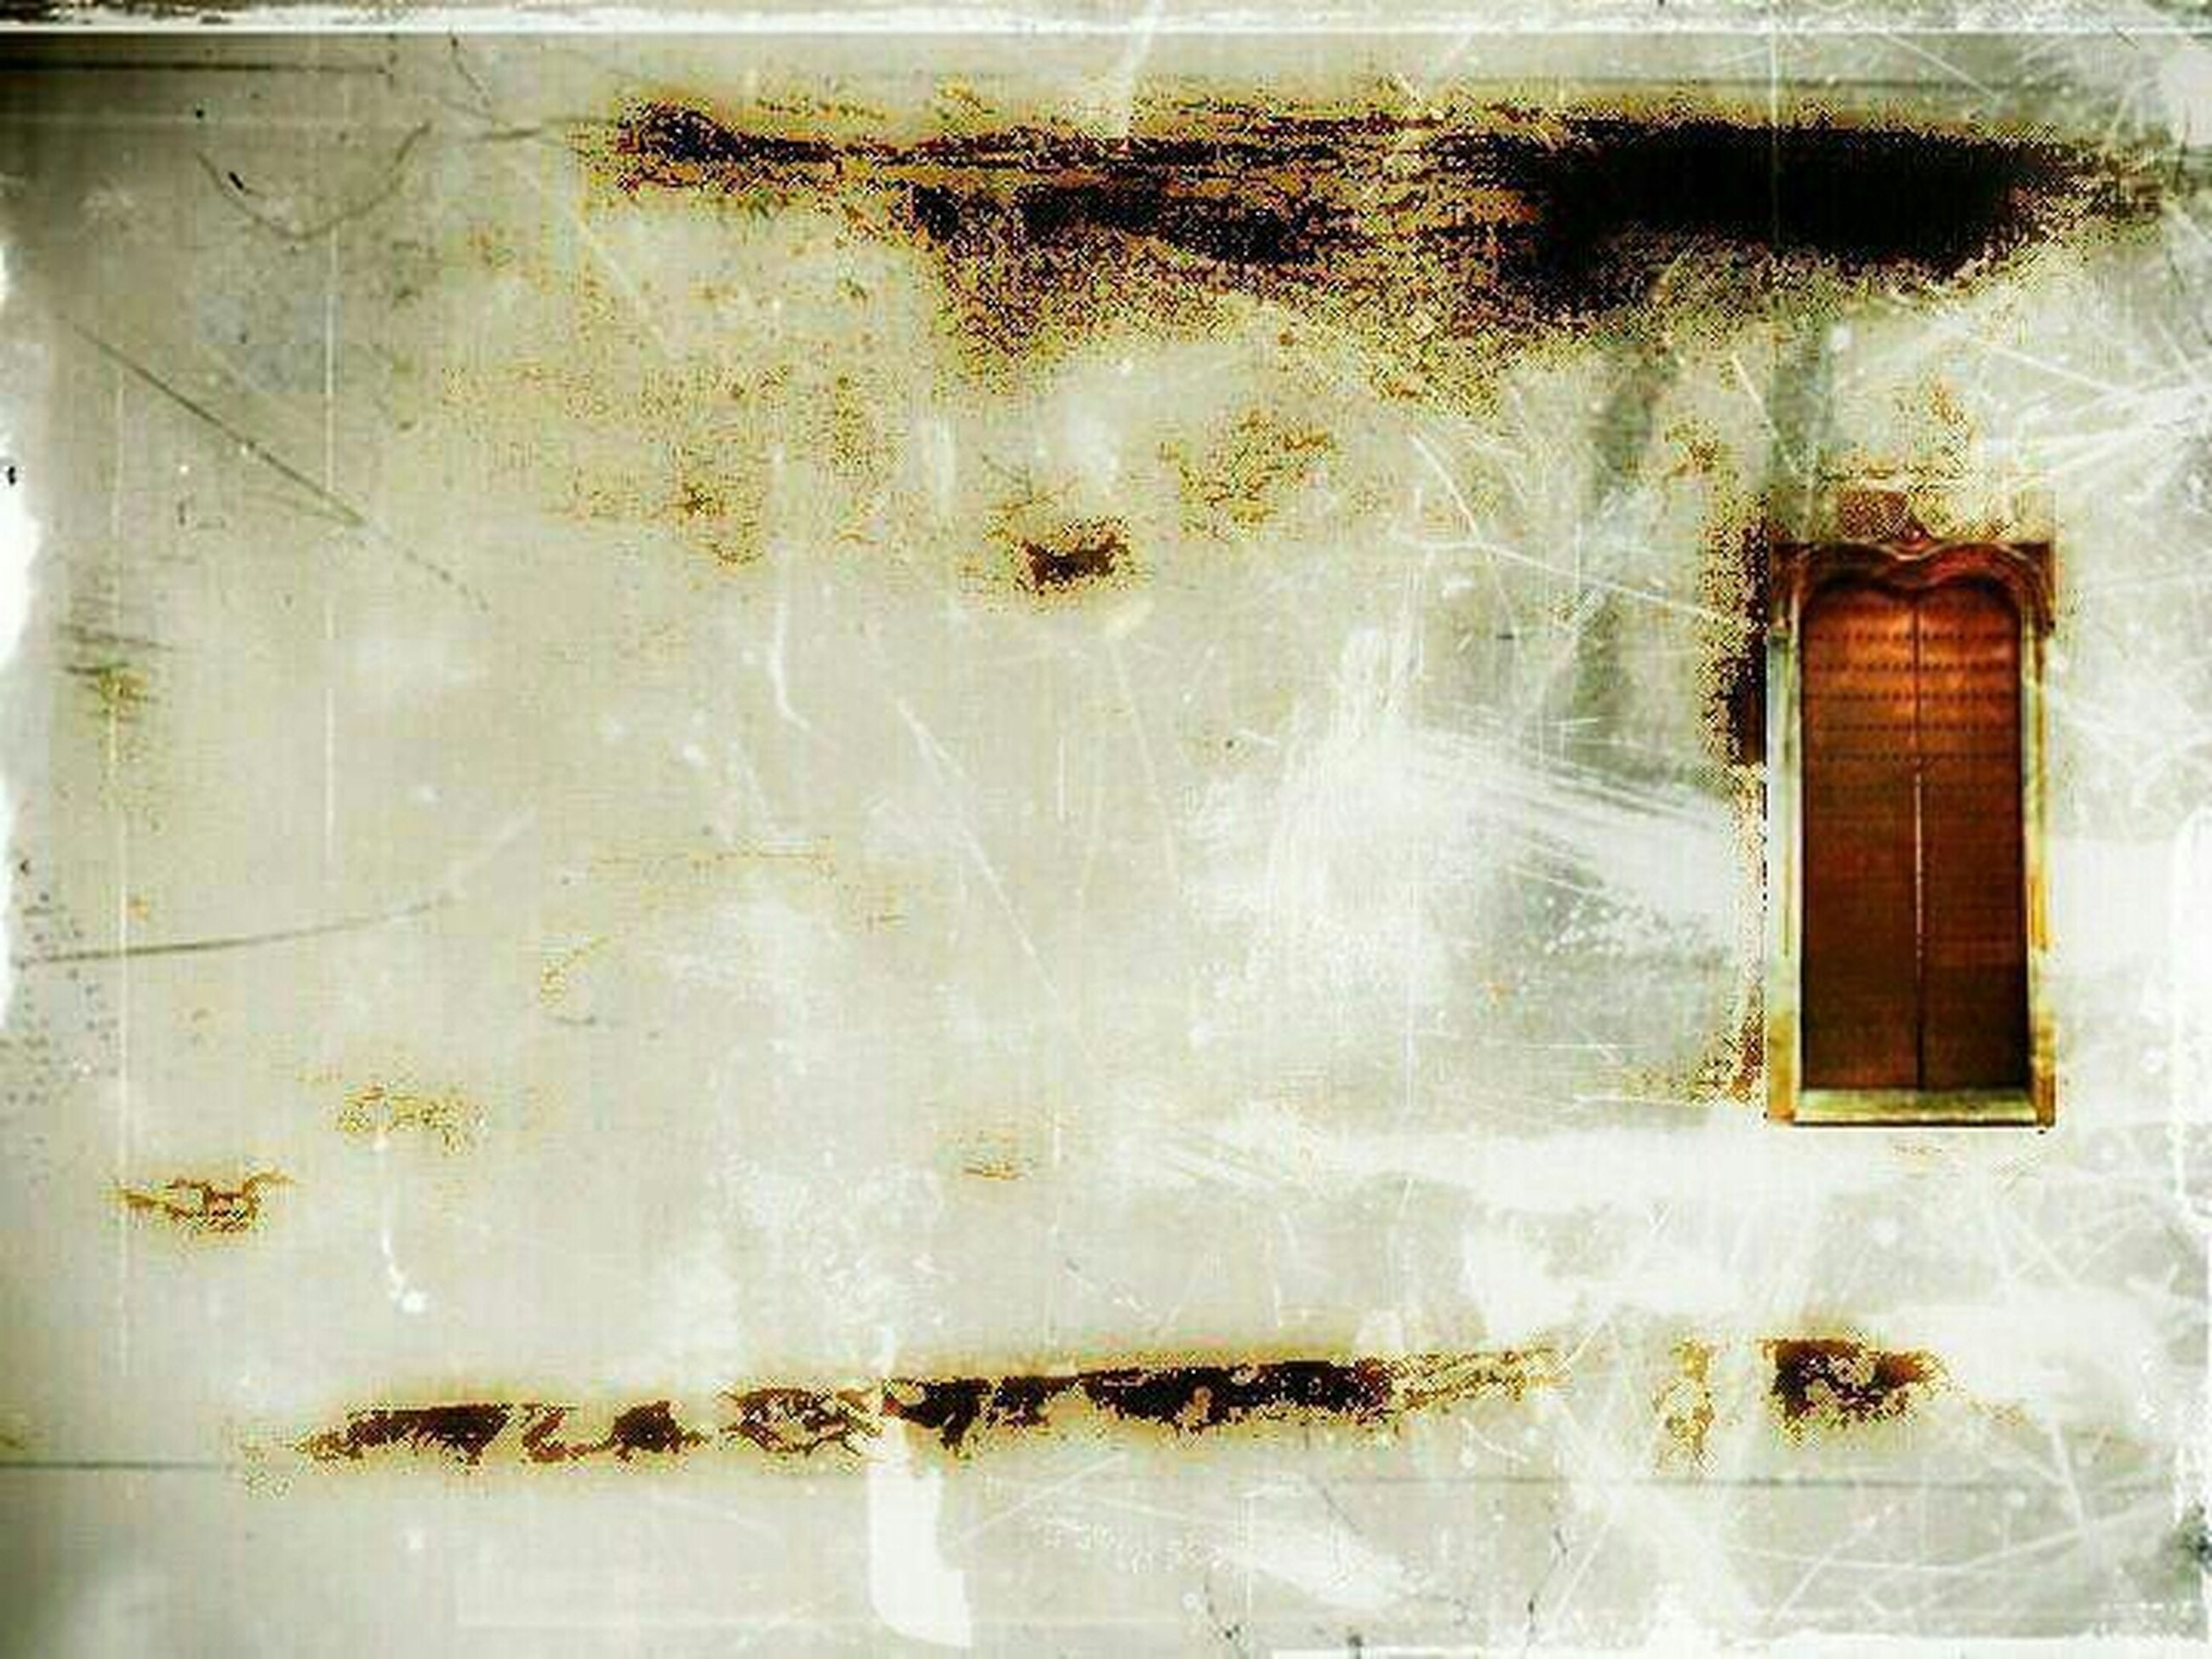 window, architecture, built structure, wall - building feature, building exterior, full frame, glass - material, wall, weathered, reflection, backgrounds, water, damaged, deterioration, close-up, old, no people, day, outdoors, house